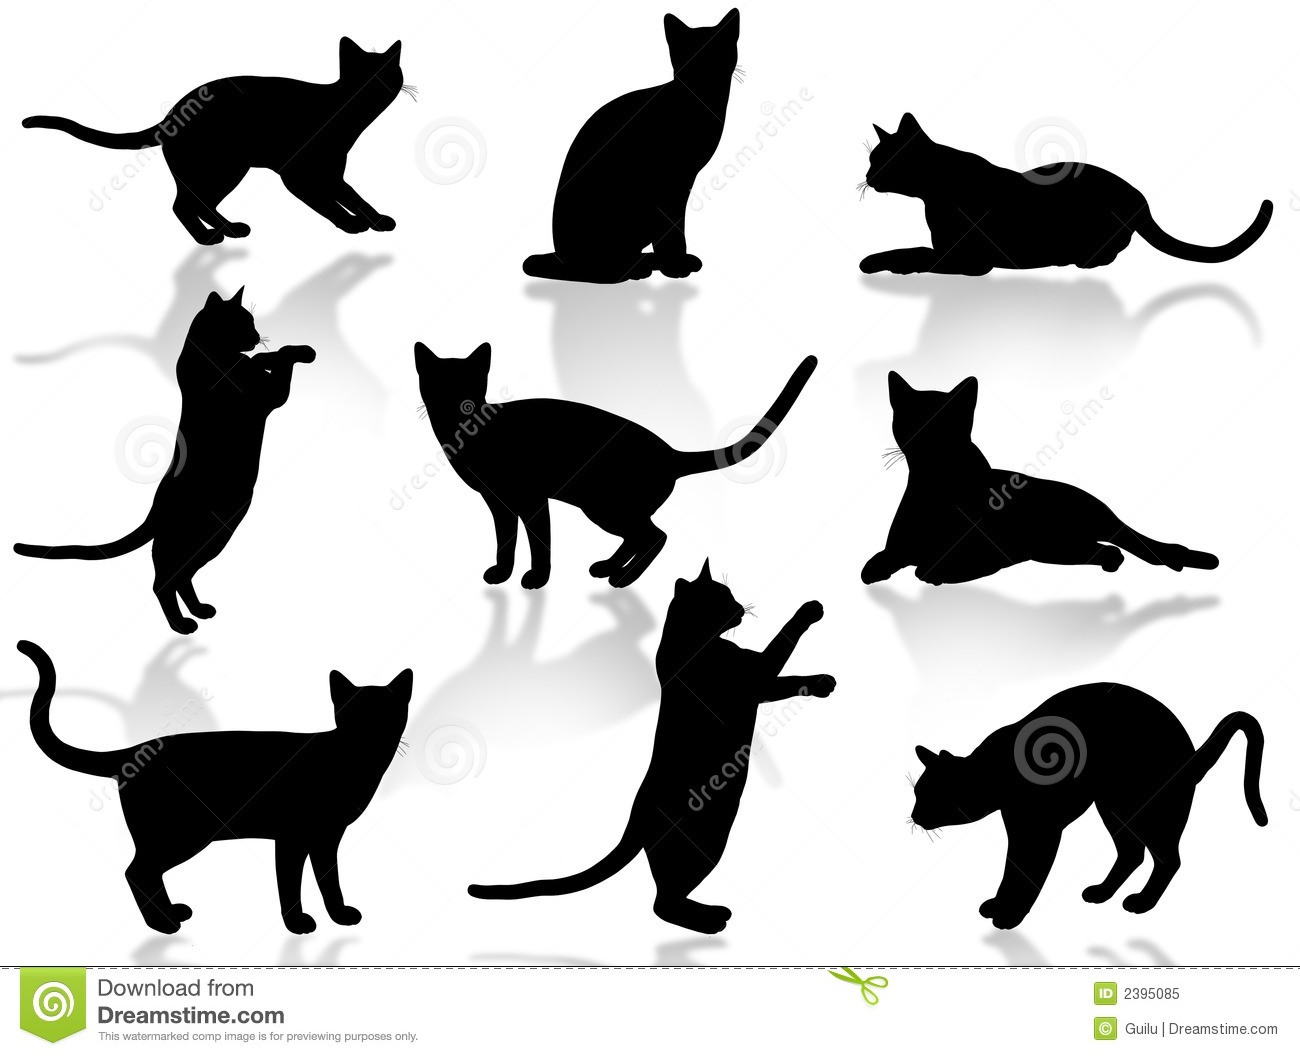 Silhouette de chats photo libre de droits image 2395085 - Dessin silhouette chat ...